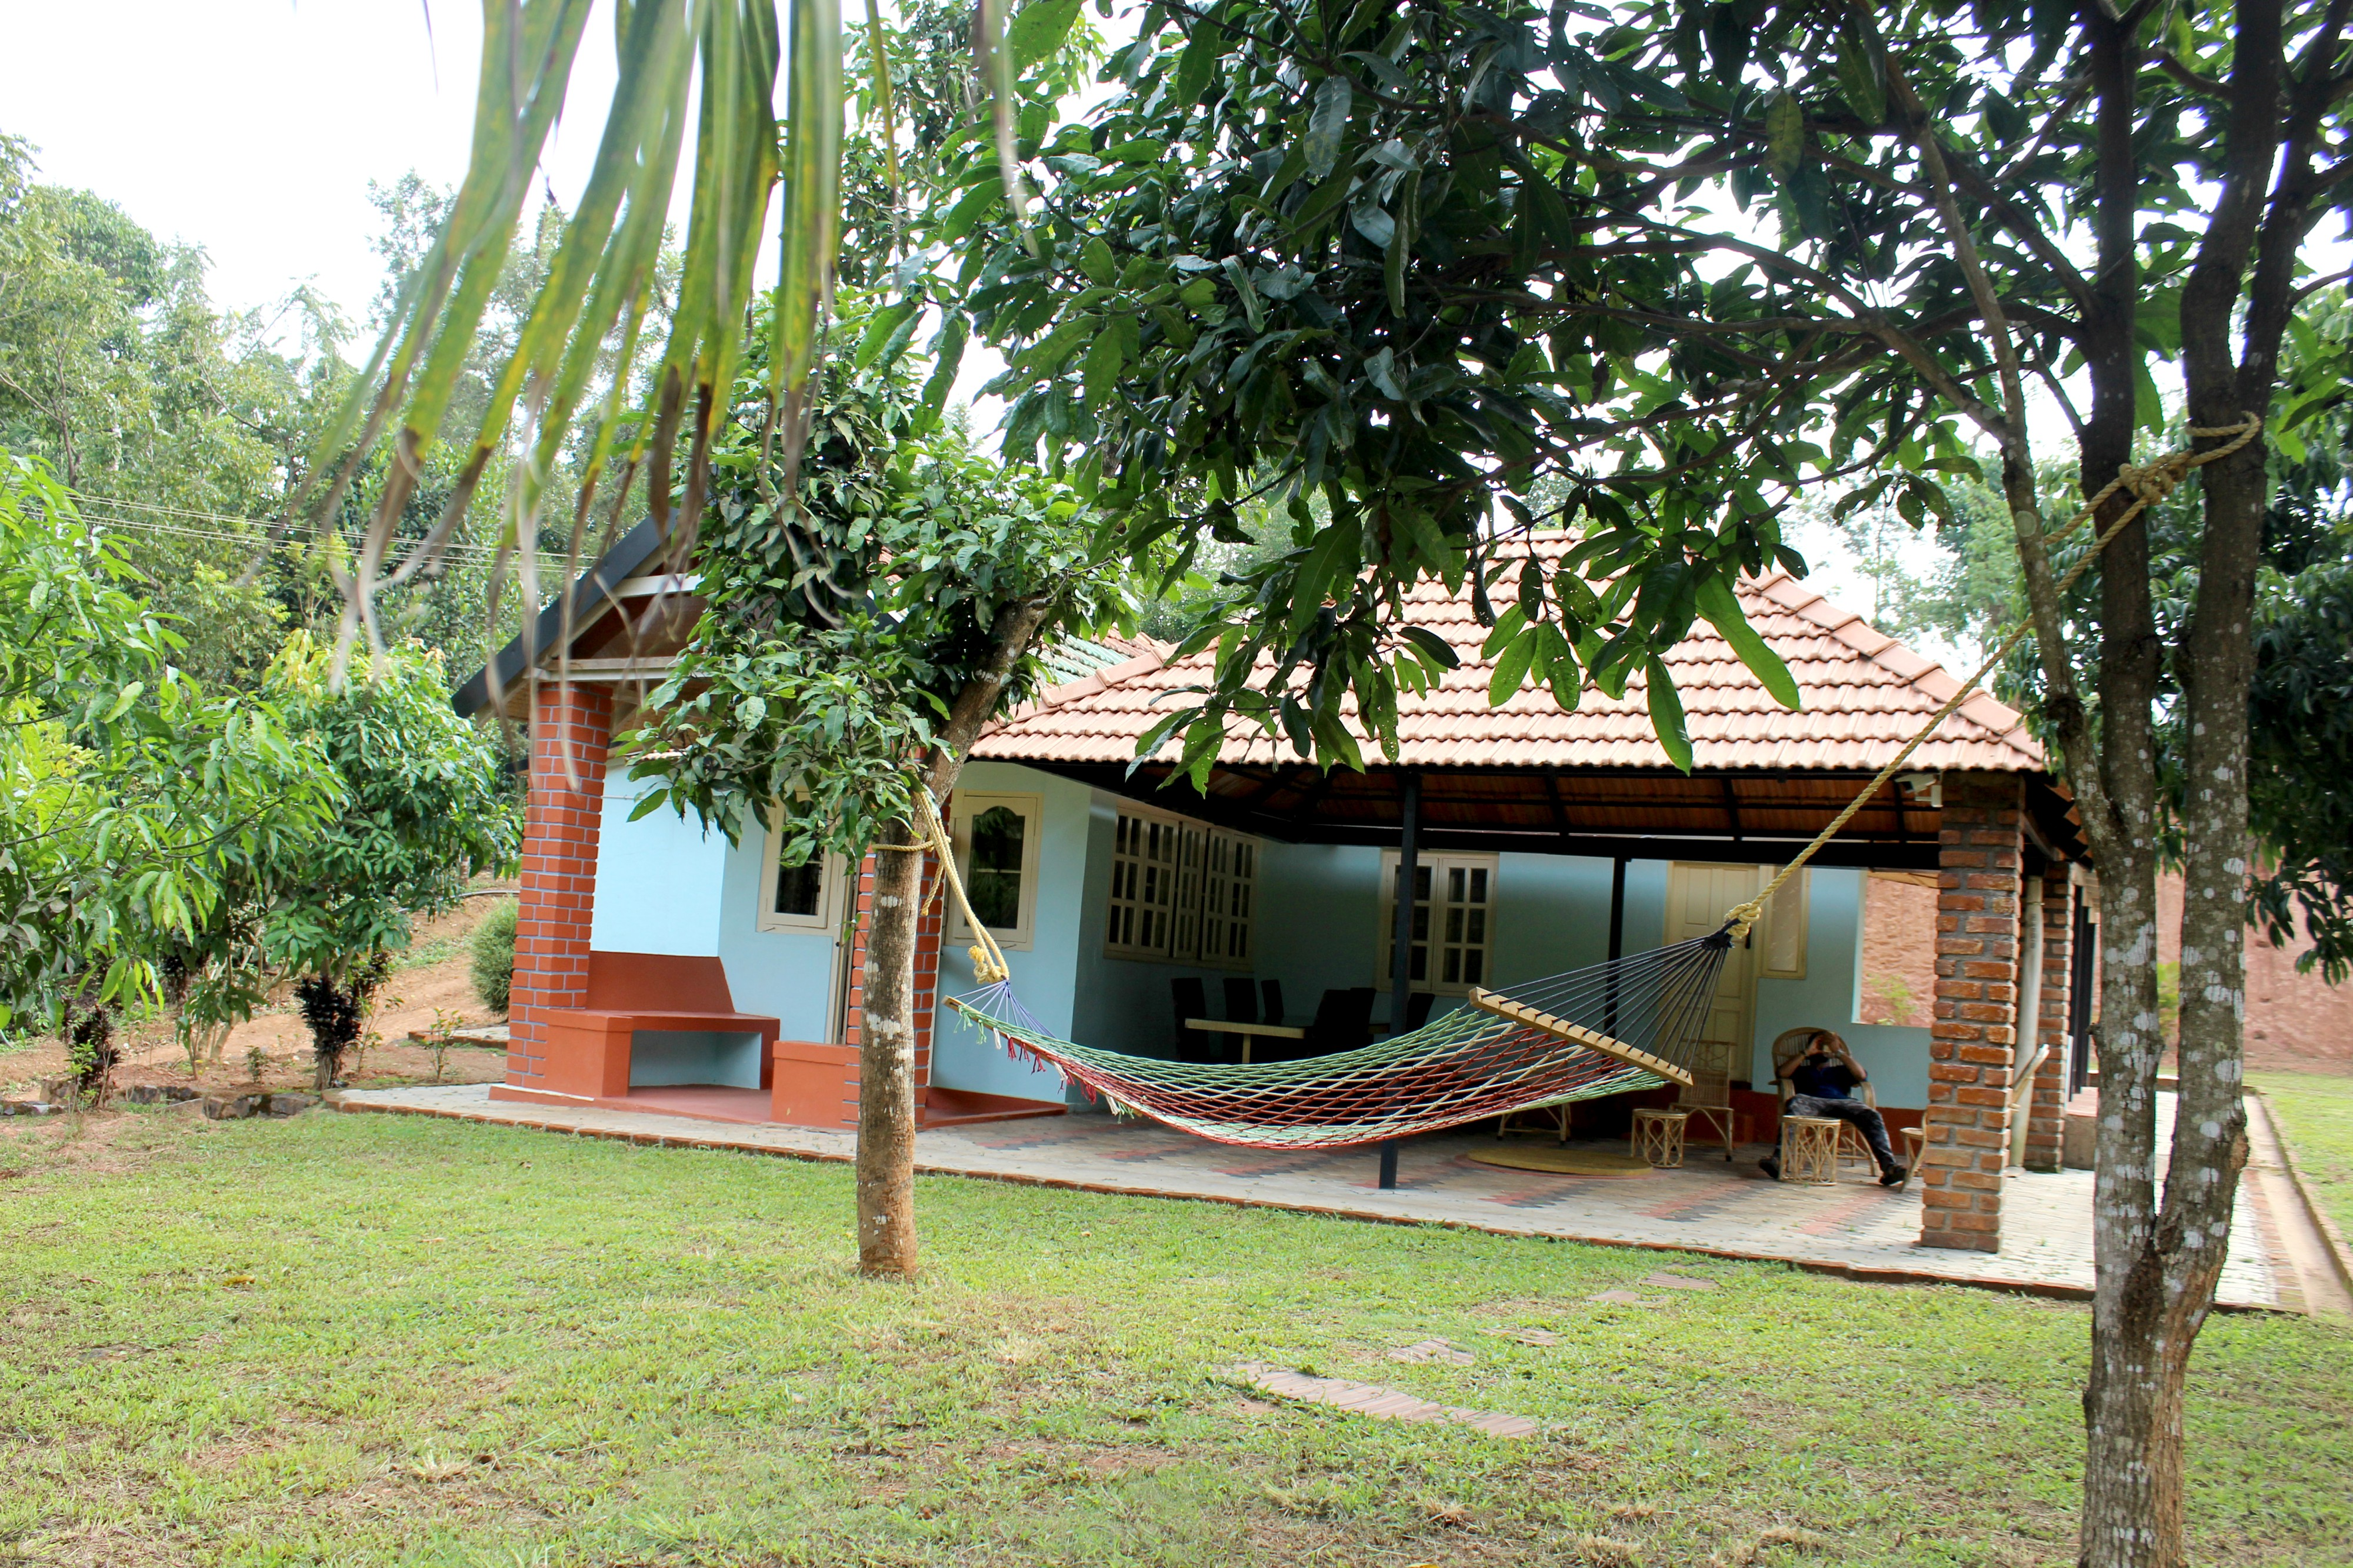 Homestay- The Hilltop Cottage